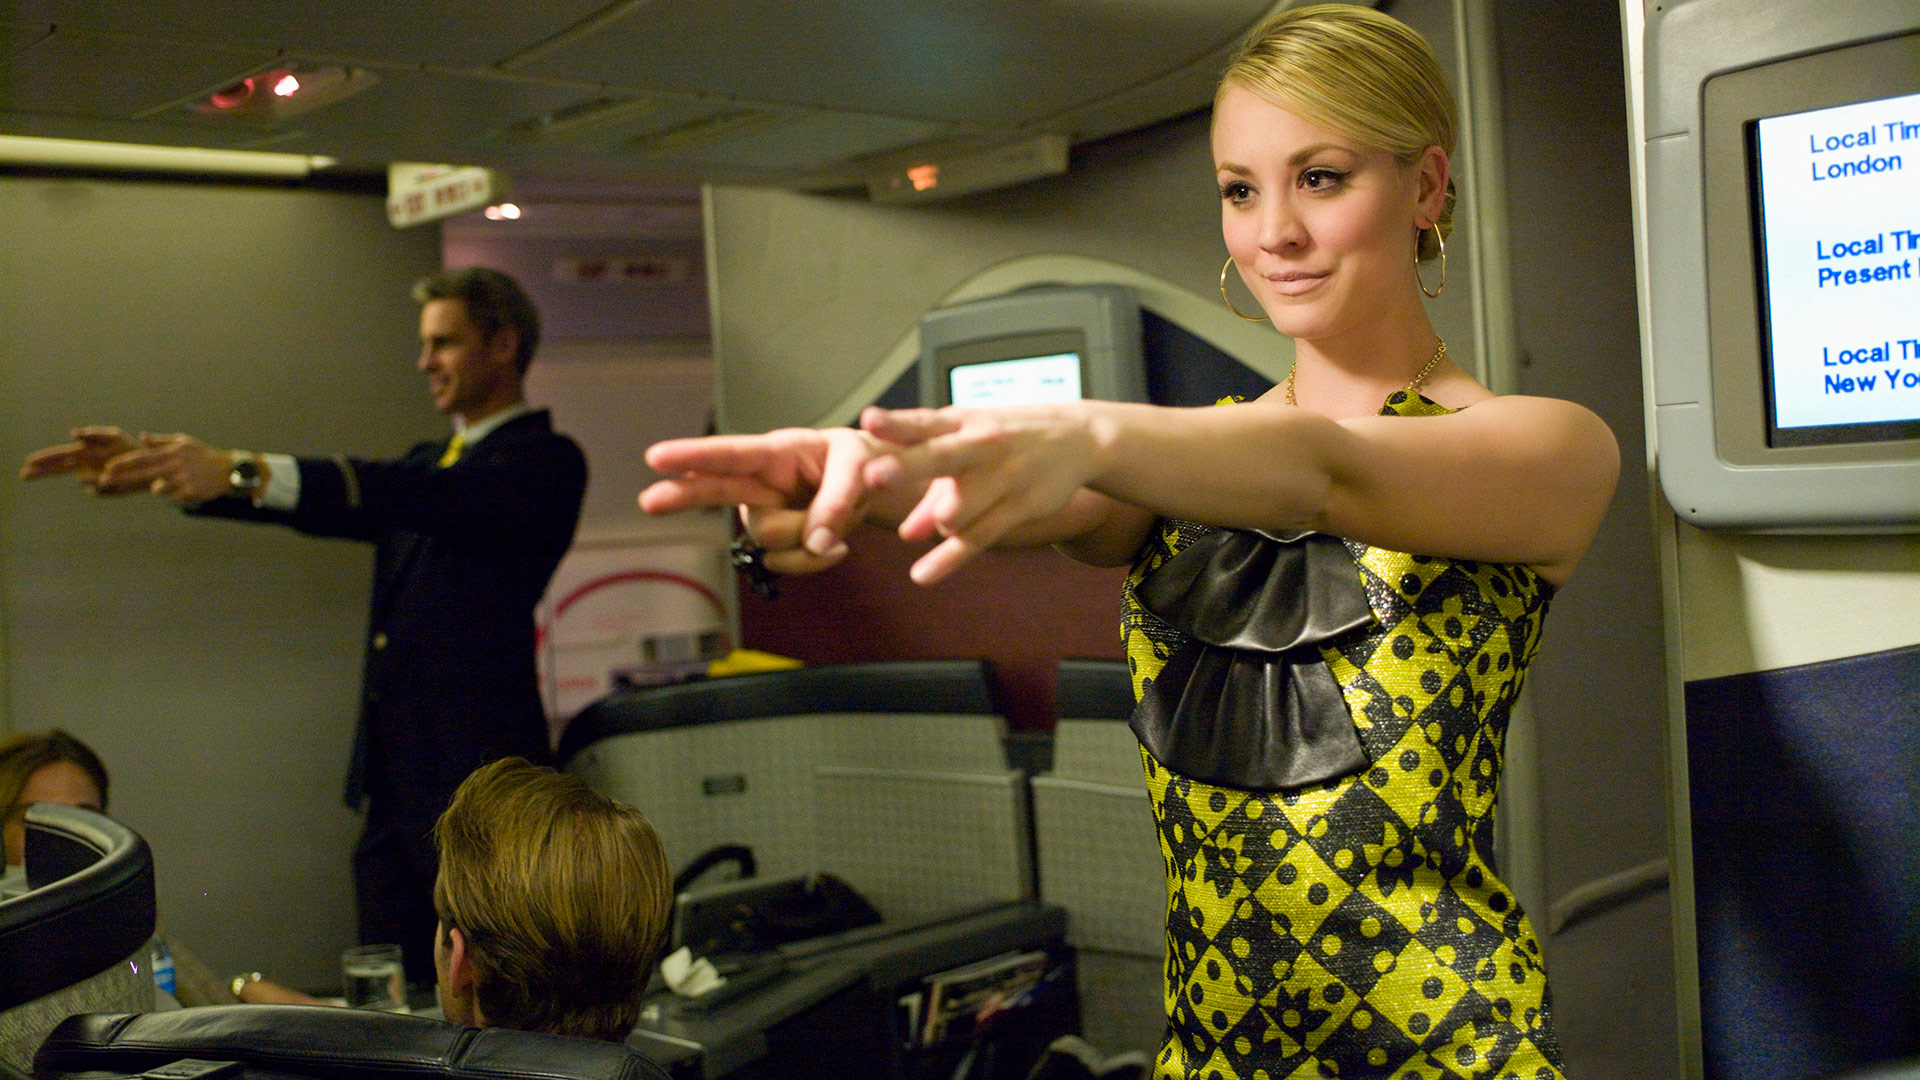 Kaley Cuoco is ready for takeoff